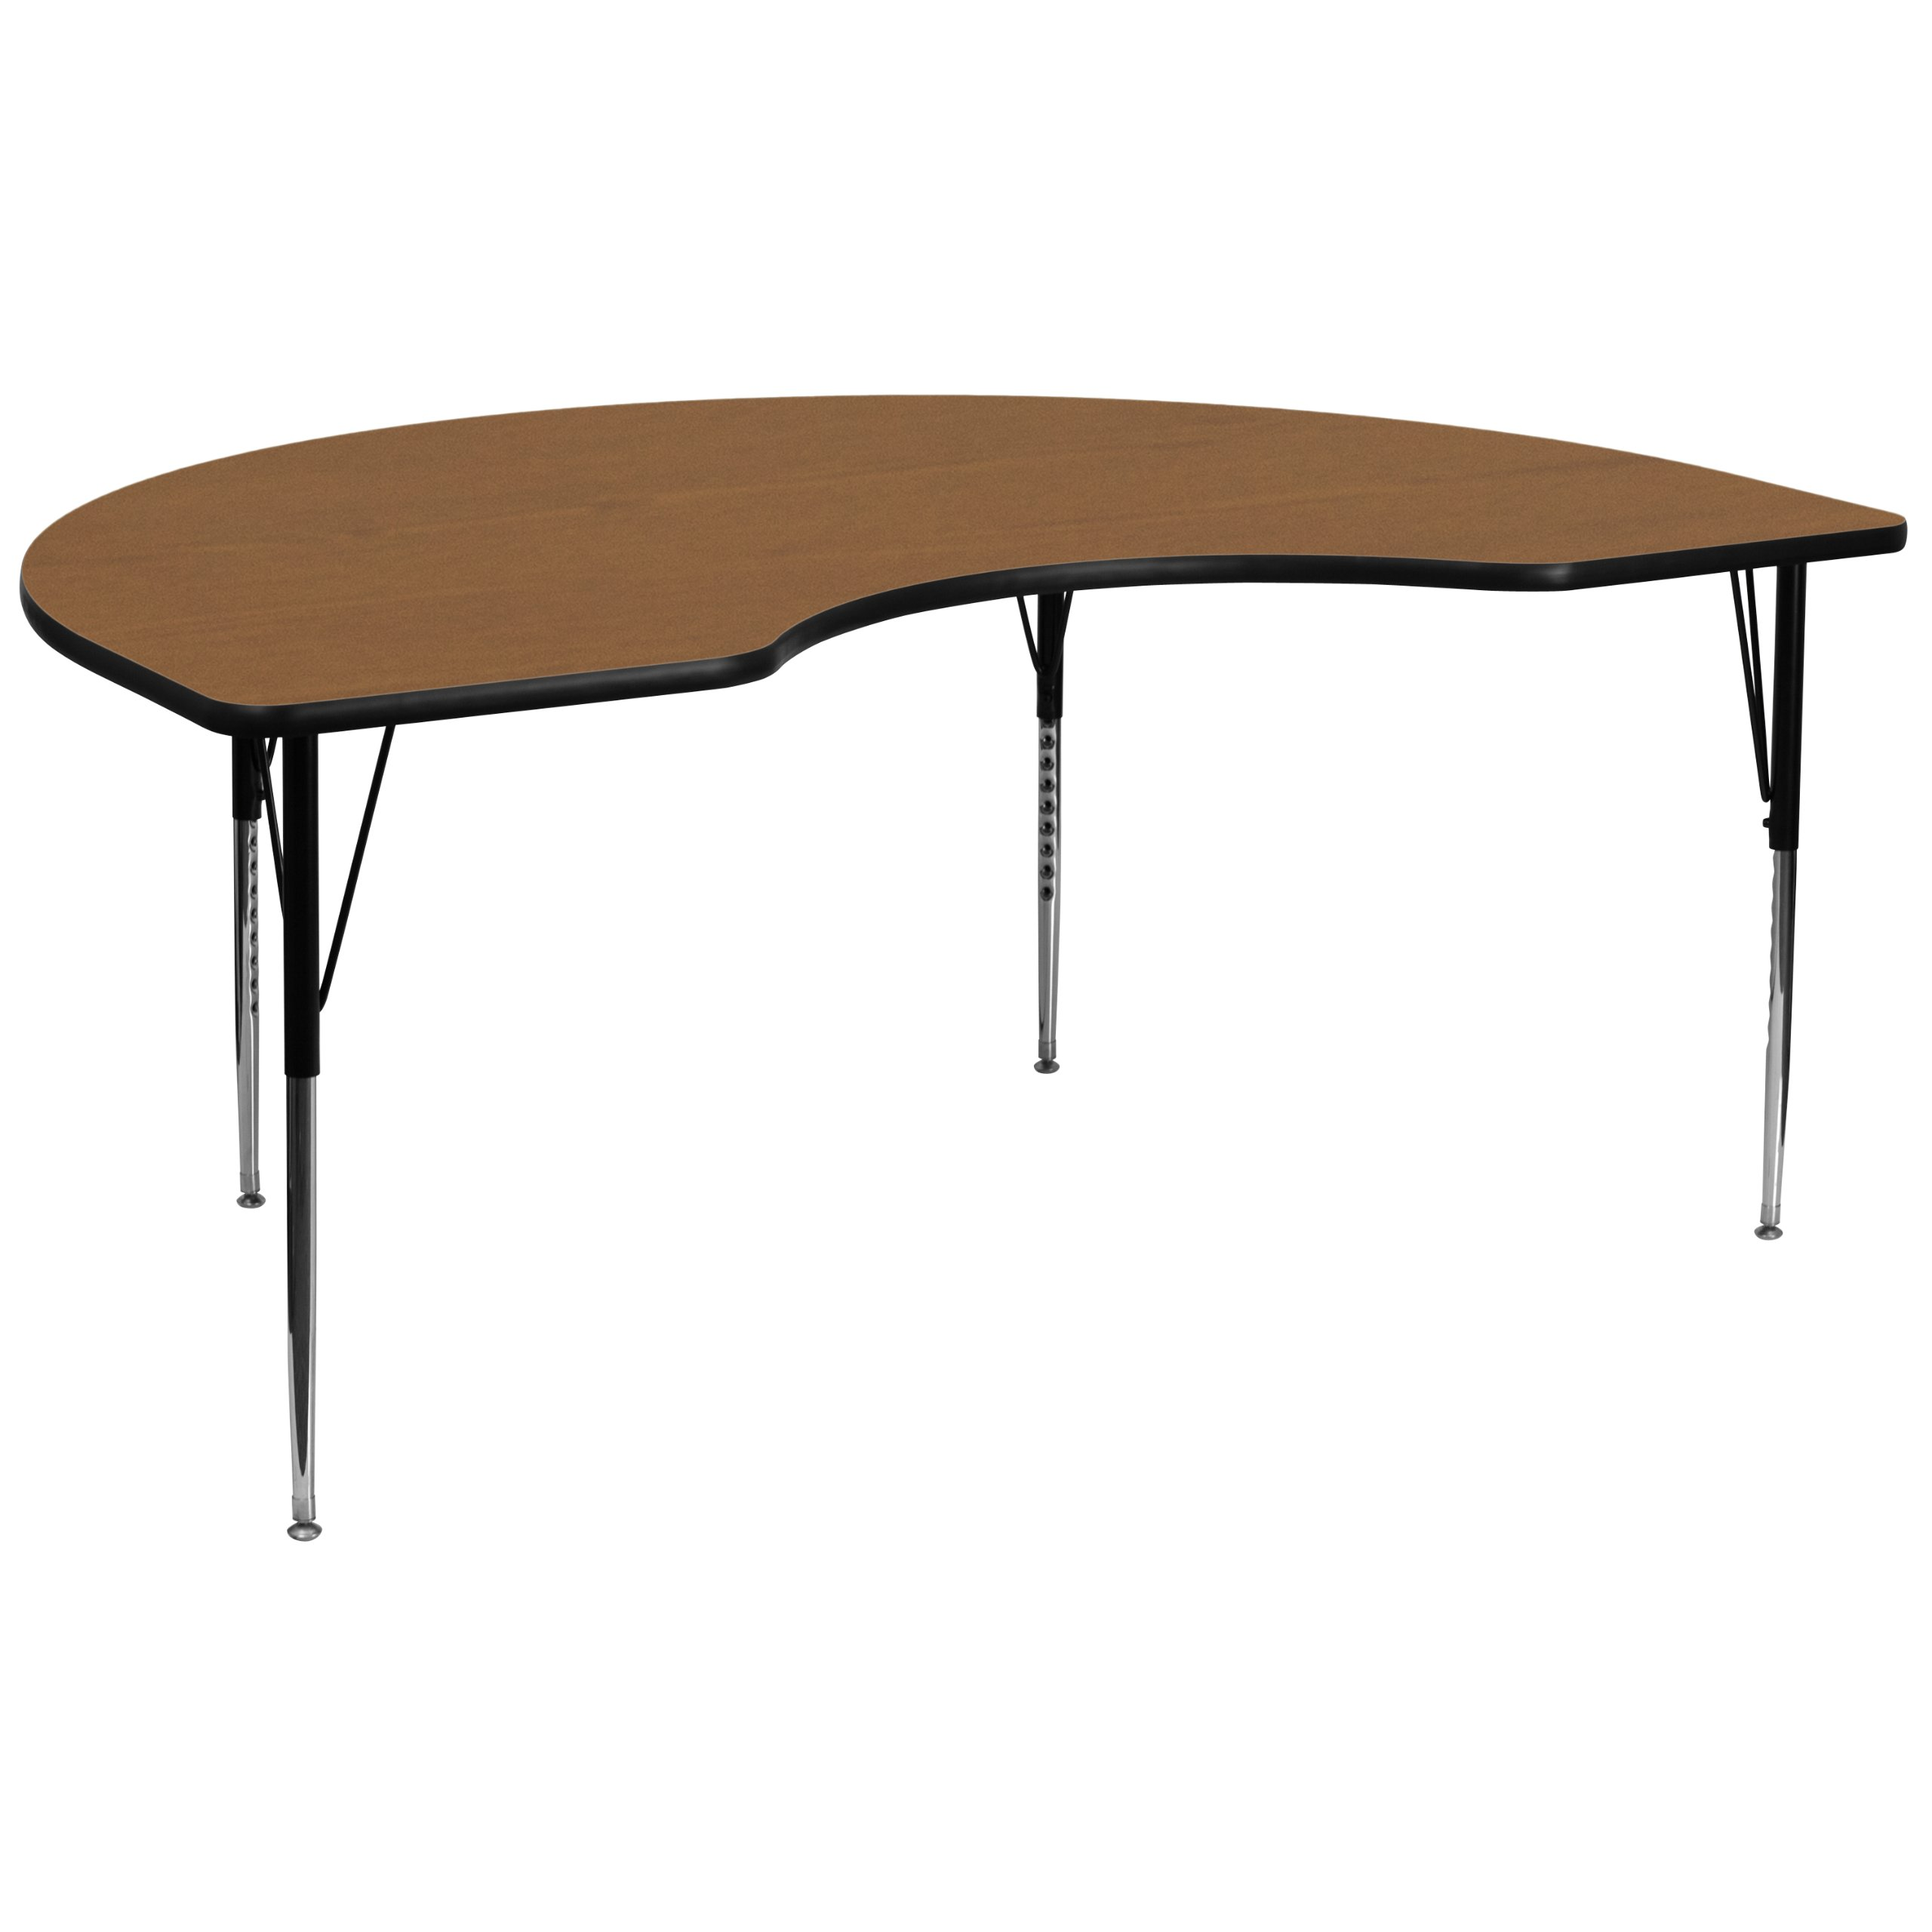 48''W x 96''L Kidney Shaped Activity Table with Oak Thermal Fused Laminate Top and Standard Height Adjustable Legs [XU-A4896-KIDNY-OAK-T-A-GG]